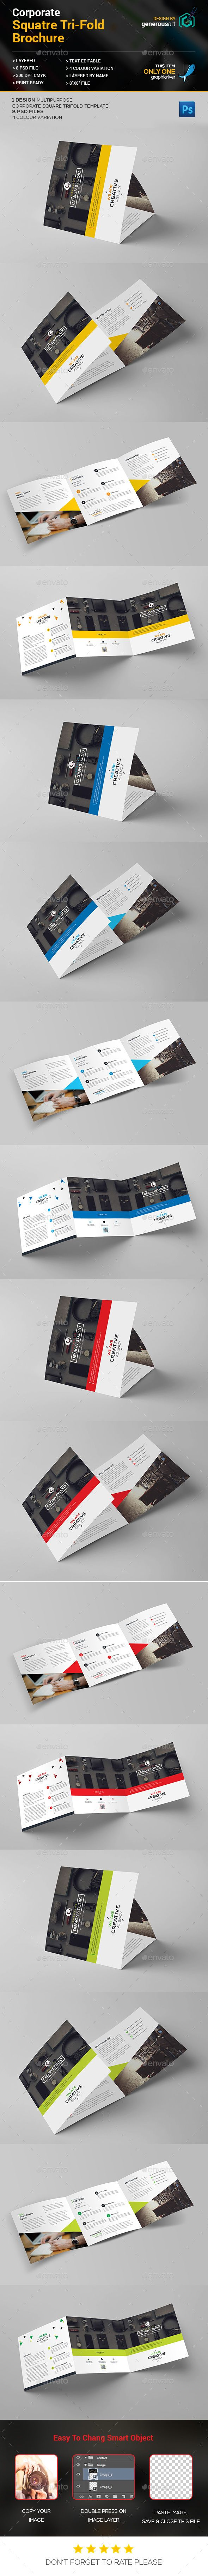 Square Tri-Fold Brochure Template PSD #design Download: http://graphicriver.net/item/square-trifold-brochure/13957622?ref=ksioks